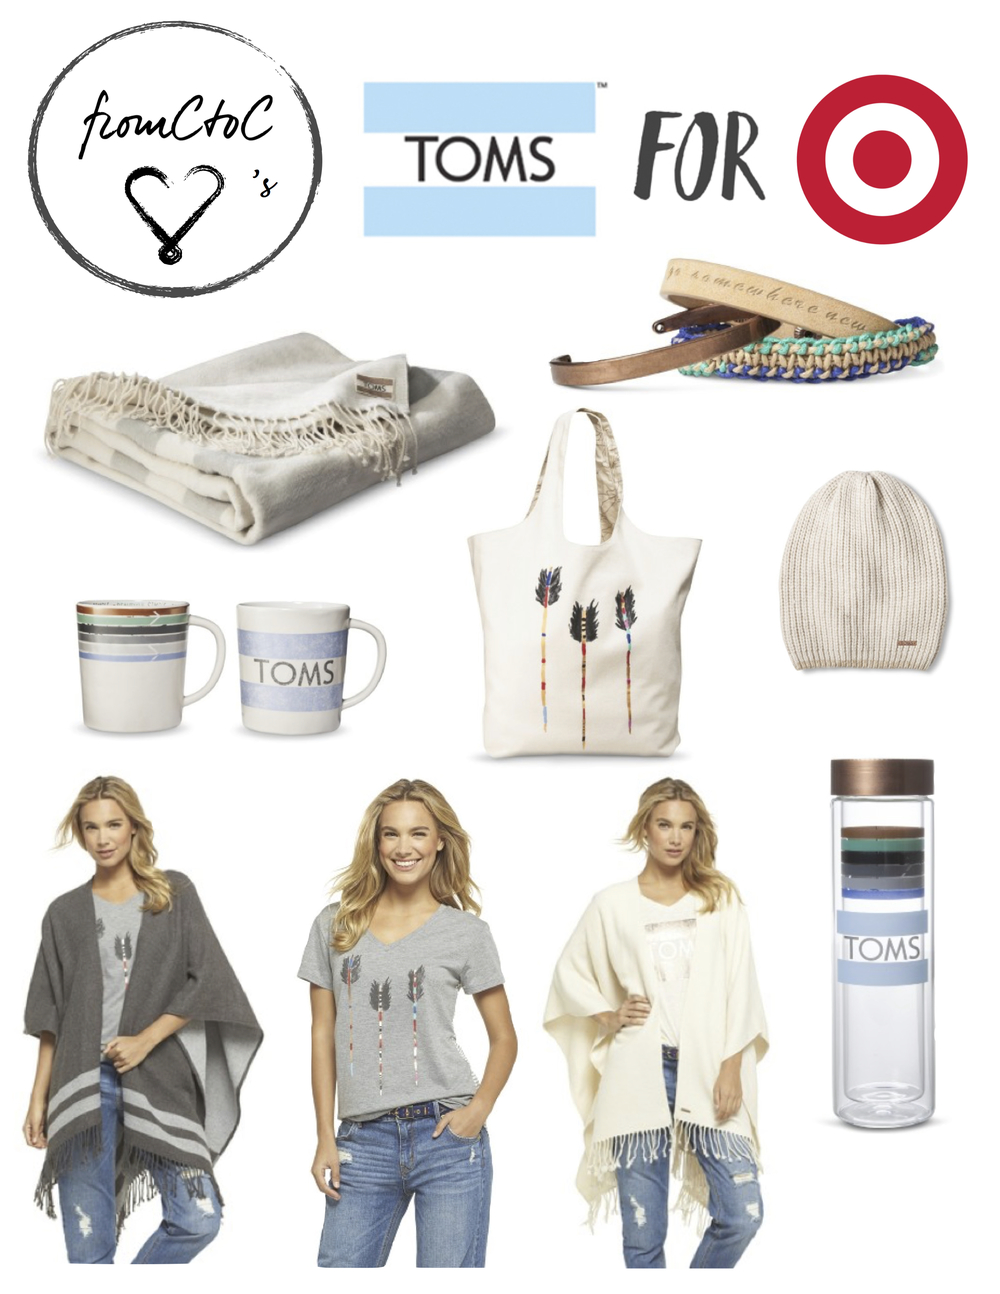 fromctoc-loves-toms-taget-gift-guide-best-picks-favorites-lifestyle-blogger-2014